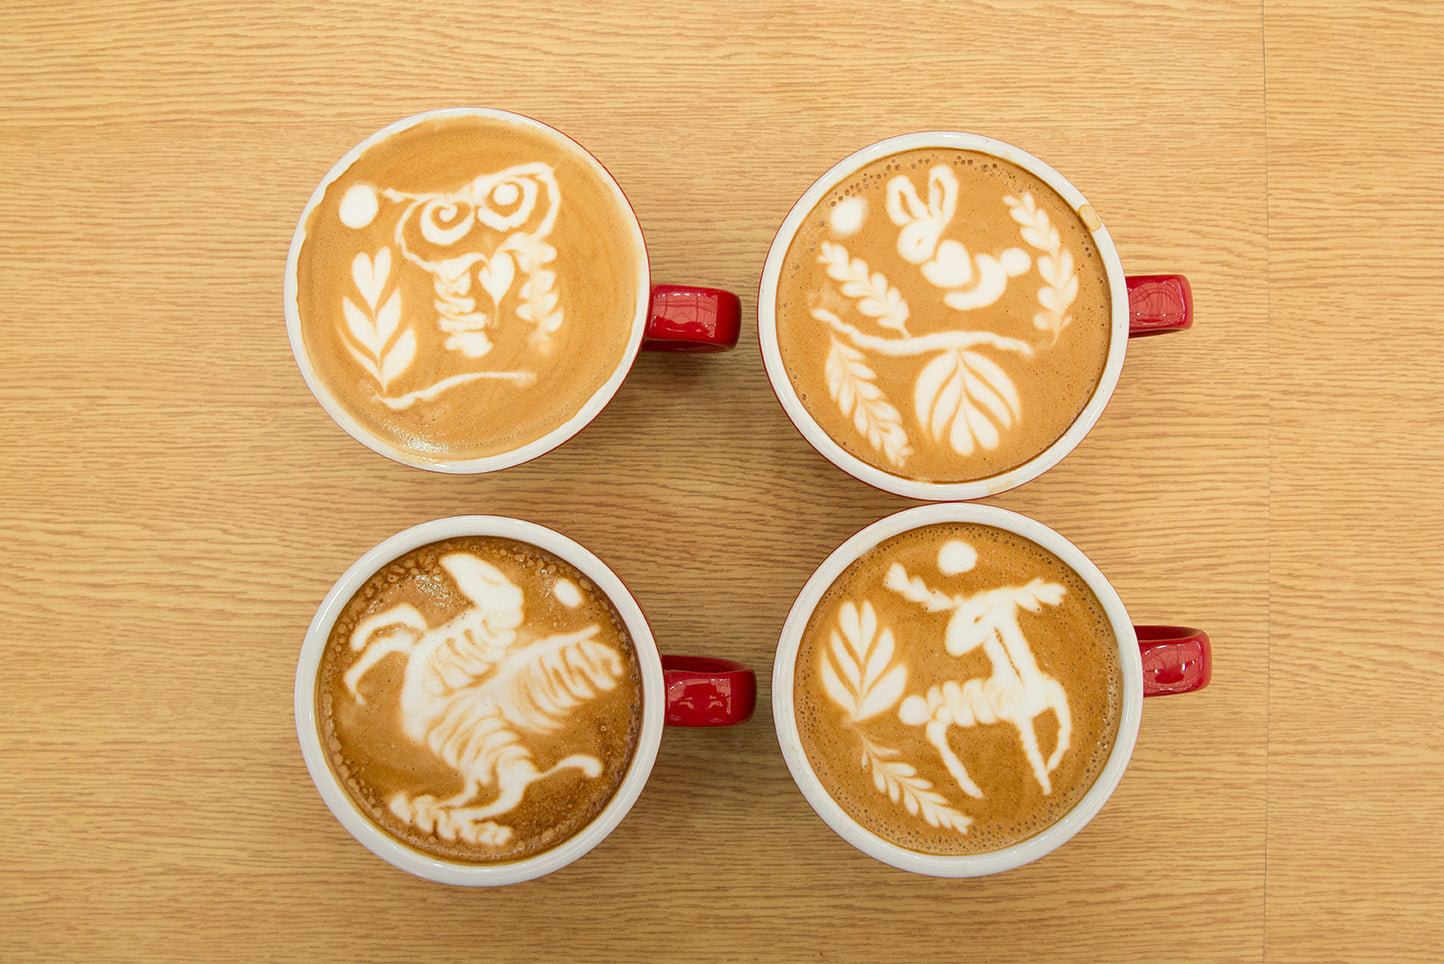 Loveramics Hotelex Latteart All-stars World Coffee Events Ristr8to